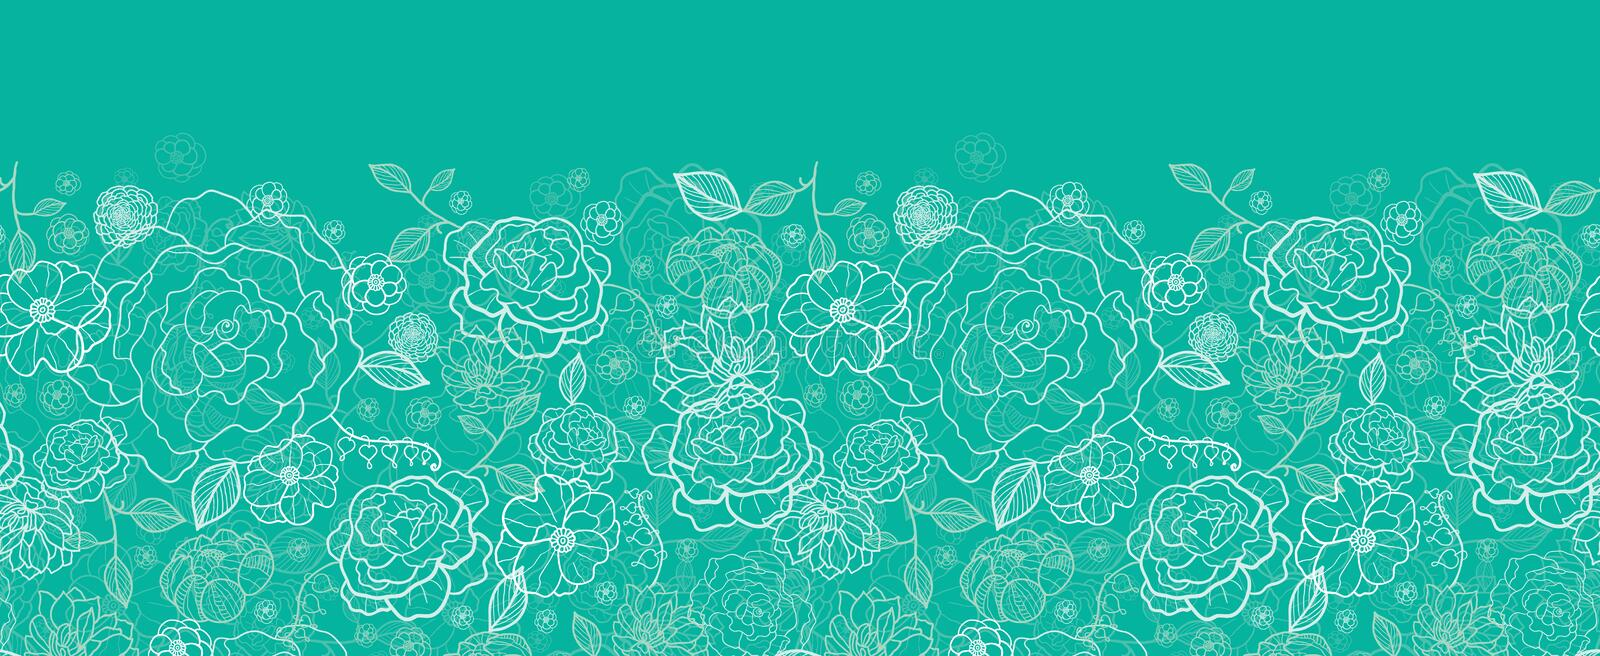 Download Emerald Green Floral Lineart Horizontal Seamless Stock Vector - Image: 31907469